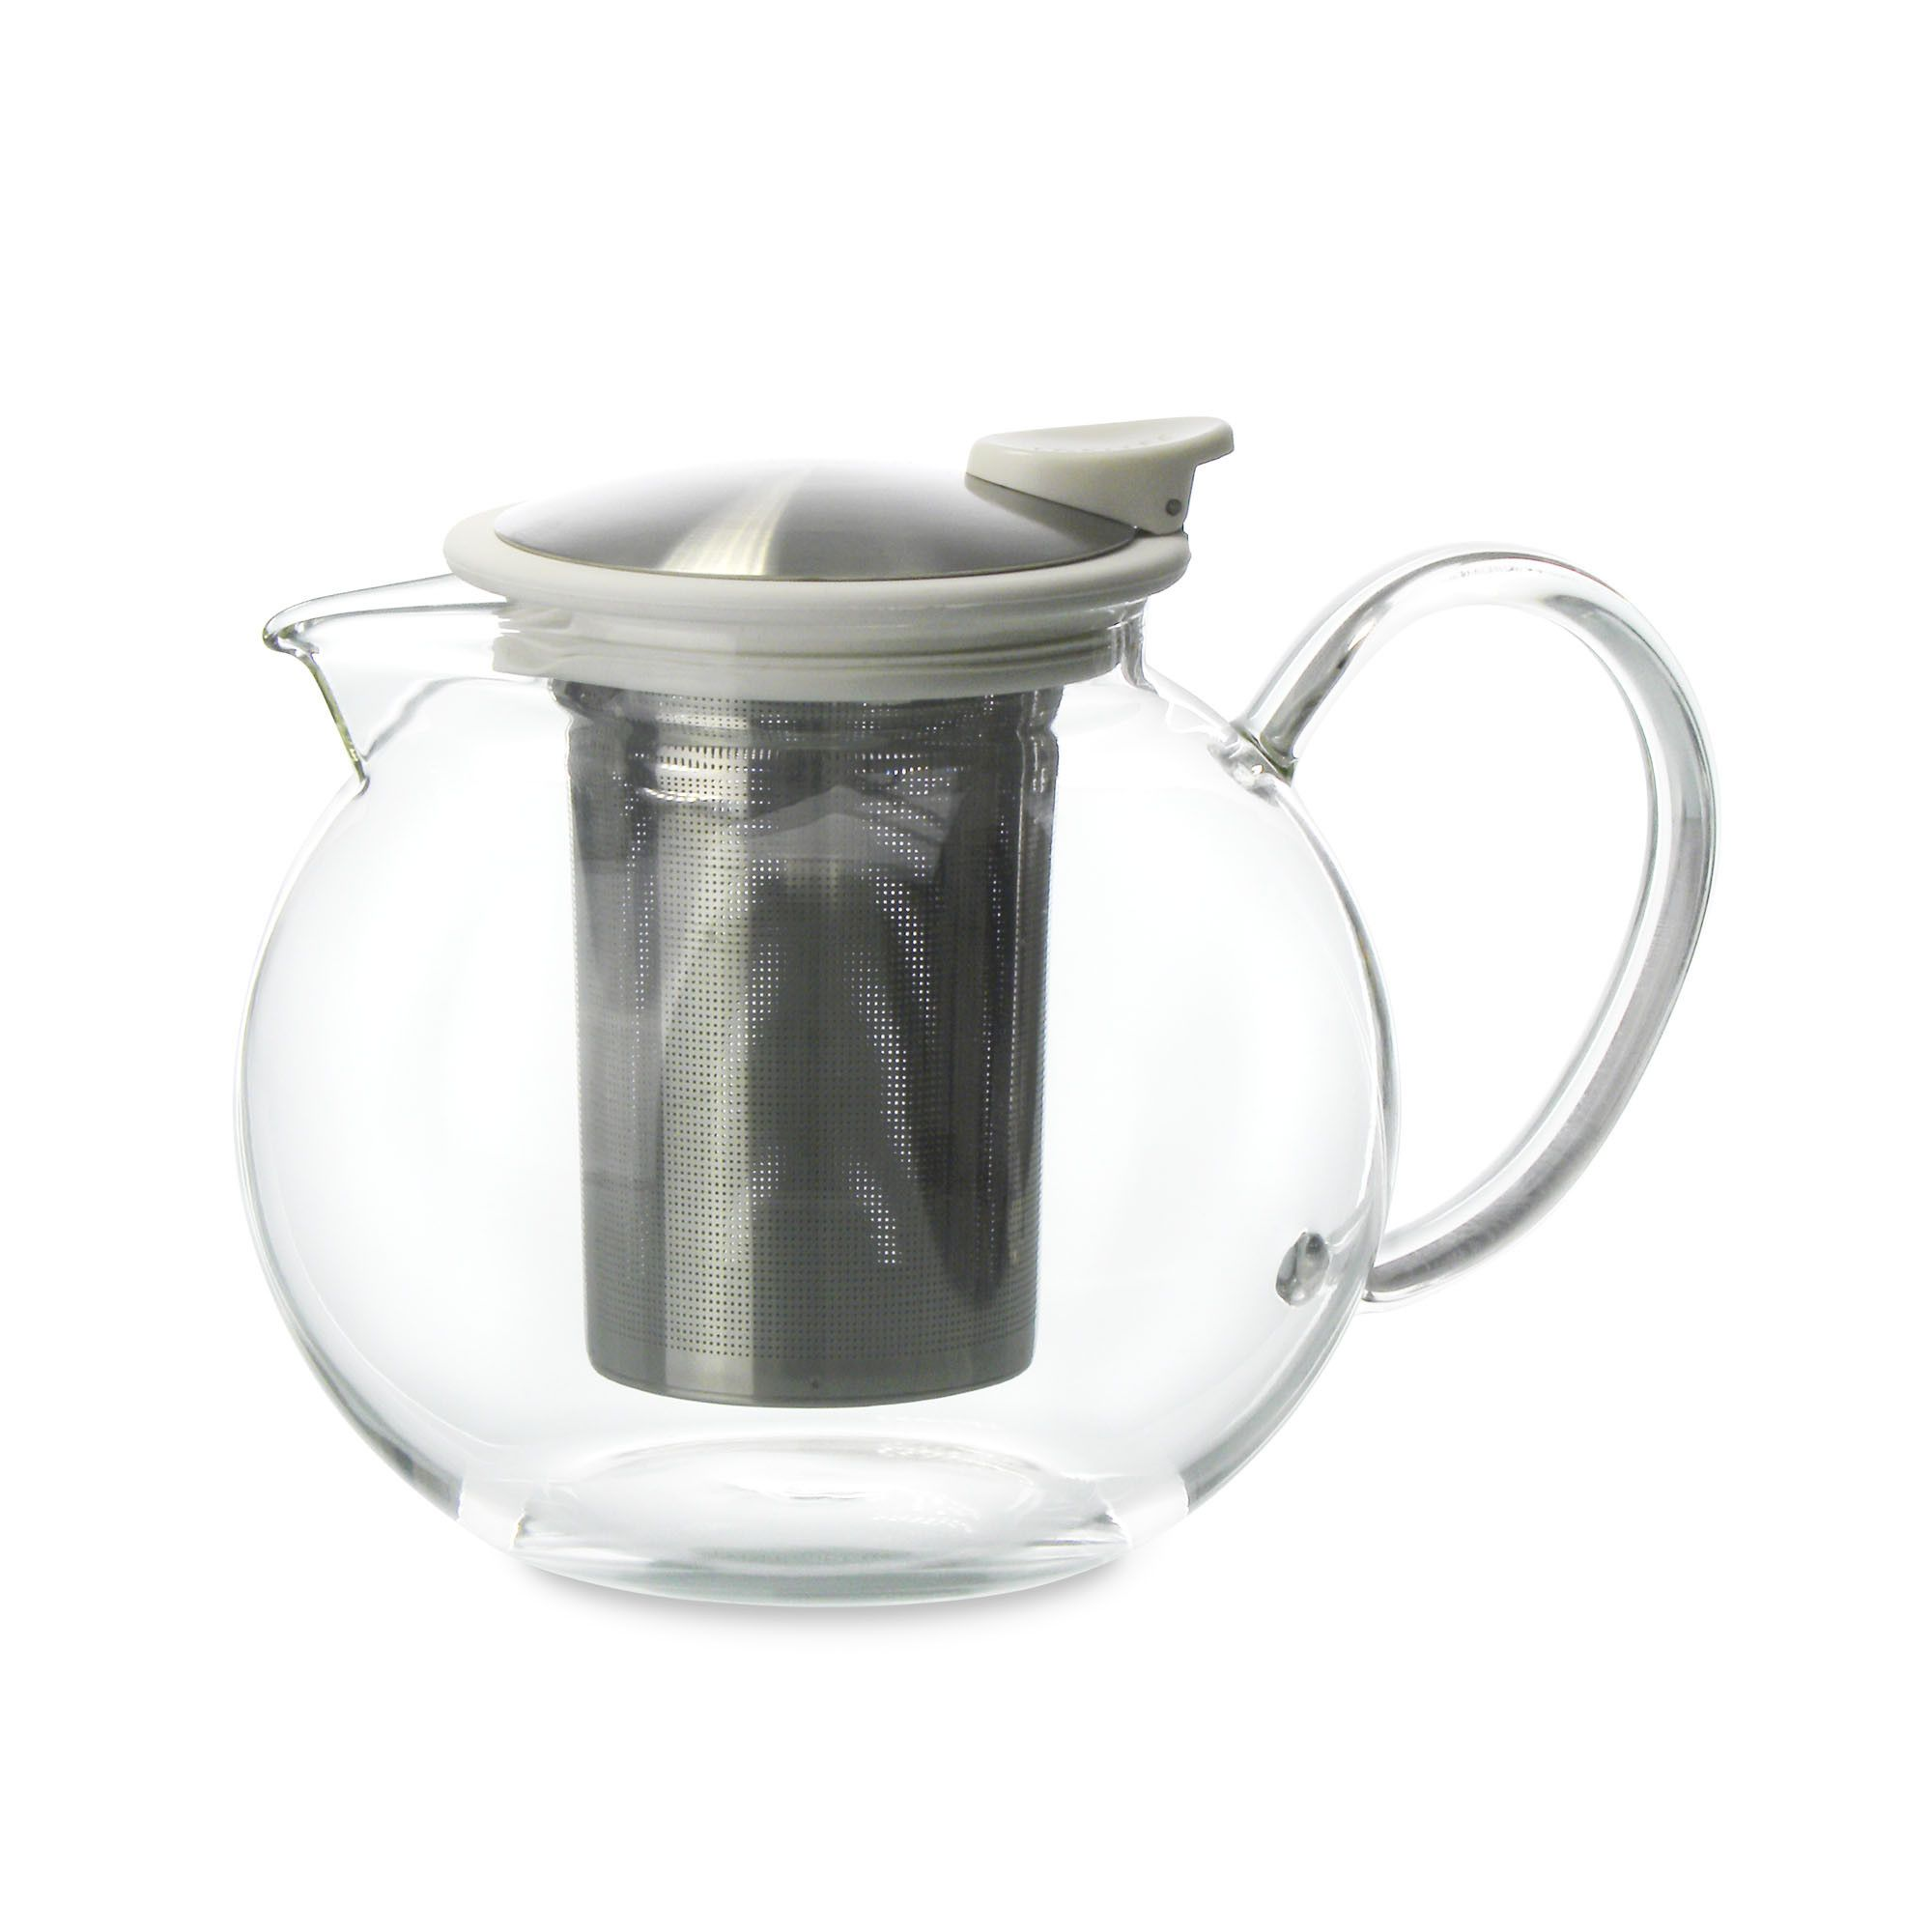 Bola Glass Teapot with Basket Infuser (2 Sizes) Glass